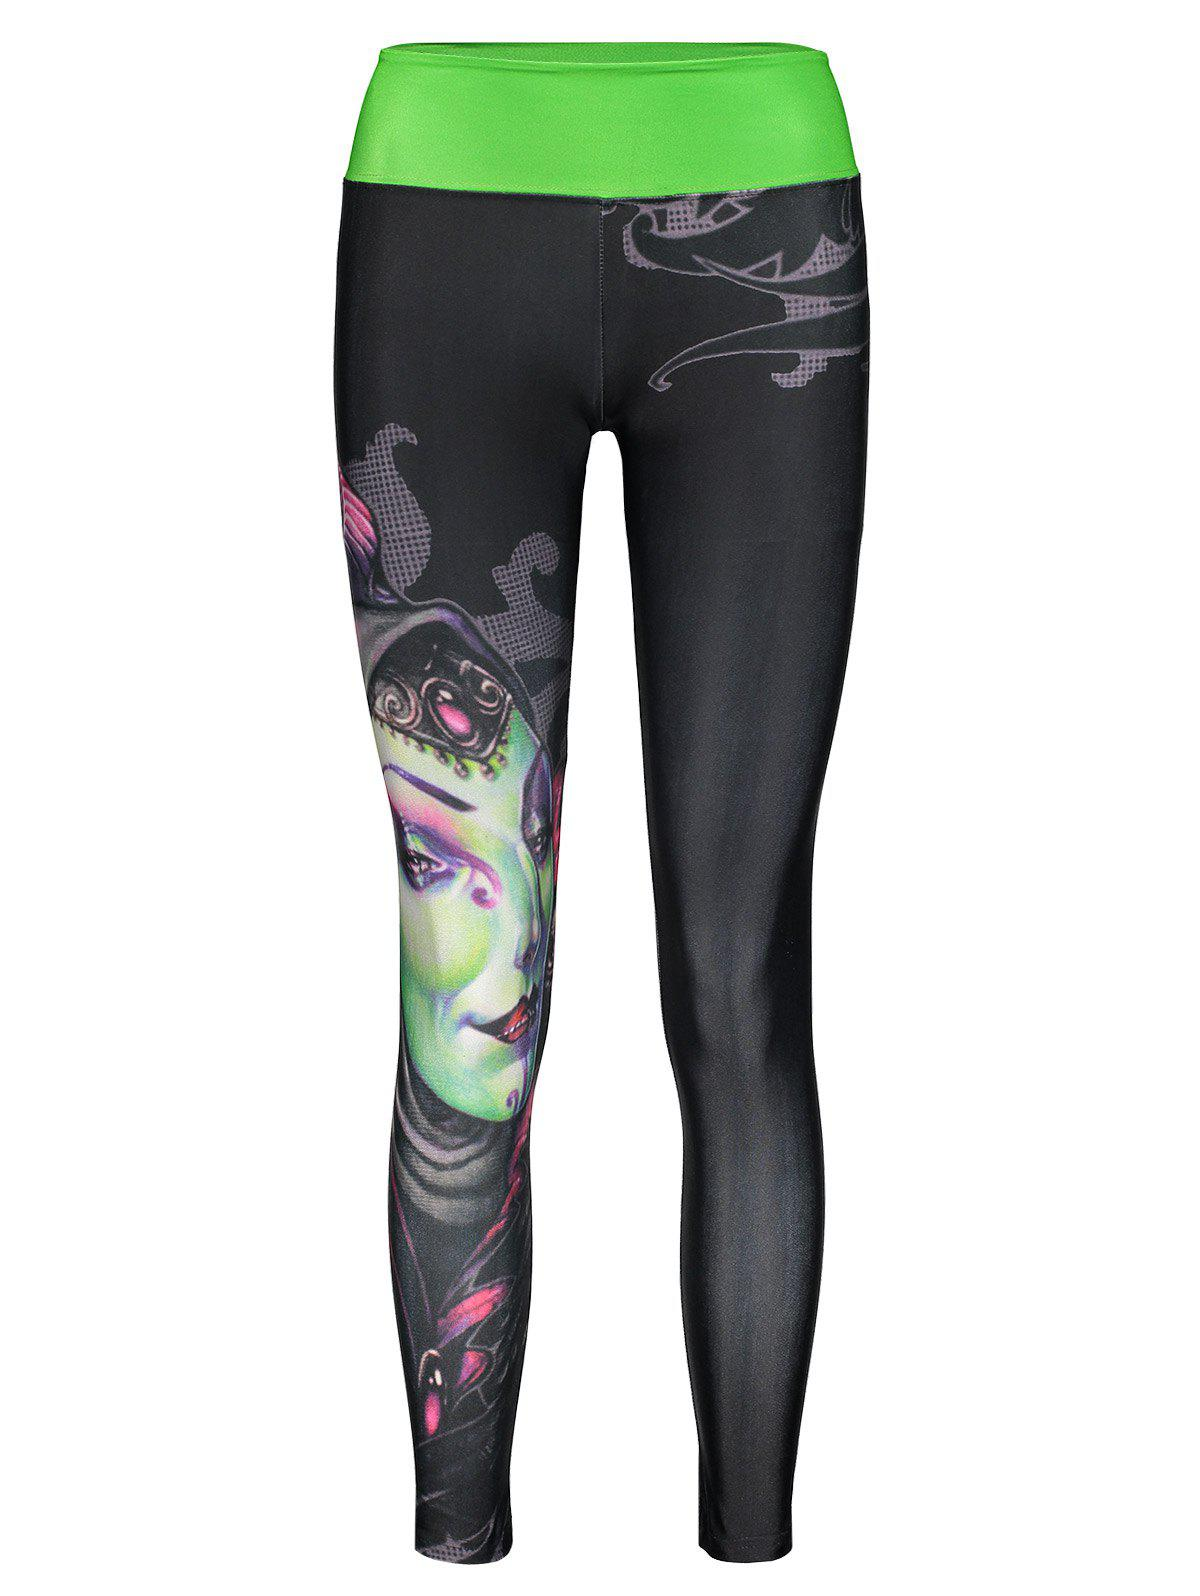 Active Elastic Waist Slimming Printed Spliced Women's Pants - COLORMIX ONE SIZE(FIT SIZE XS TO M)